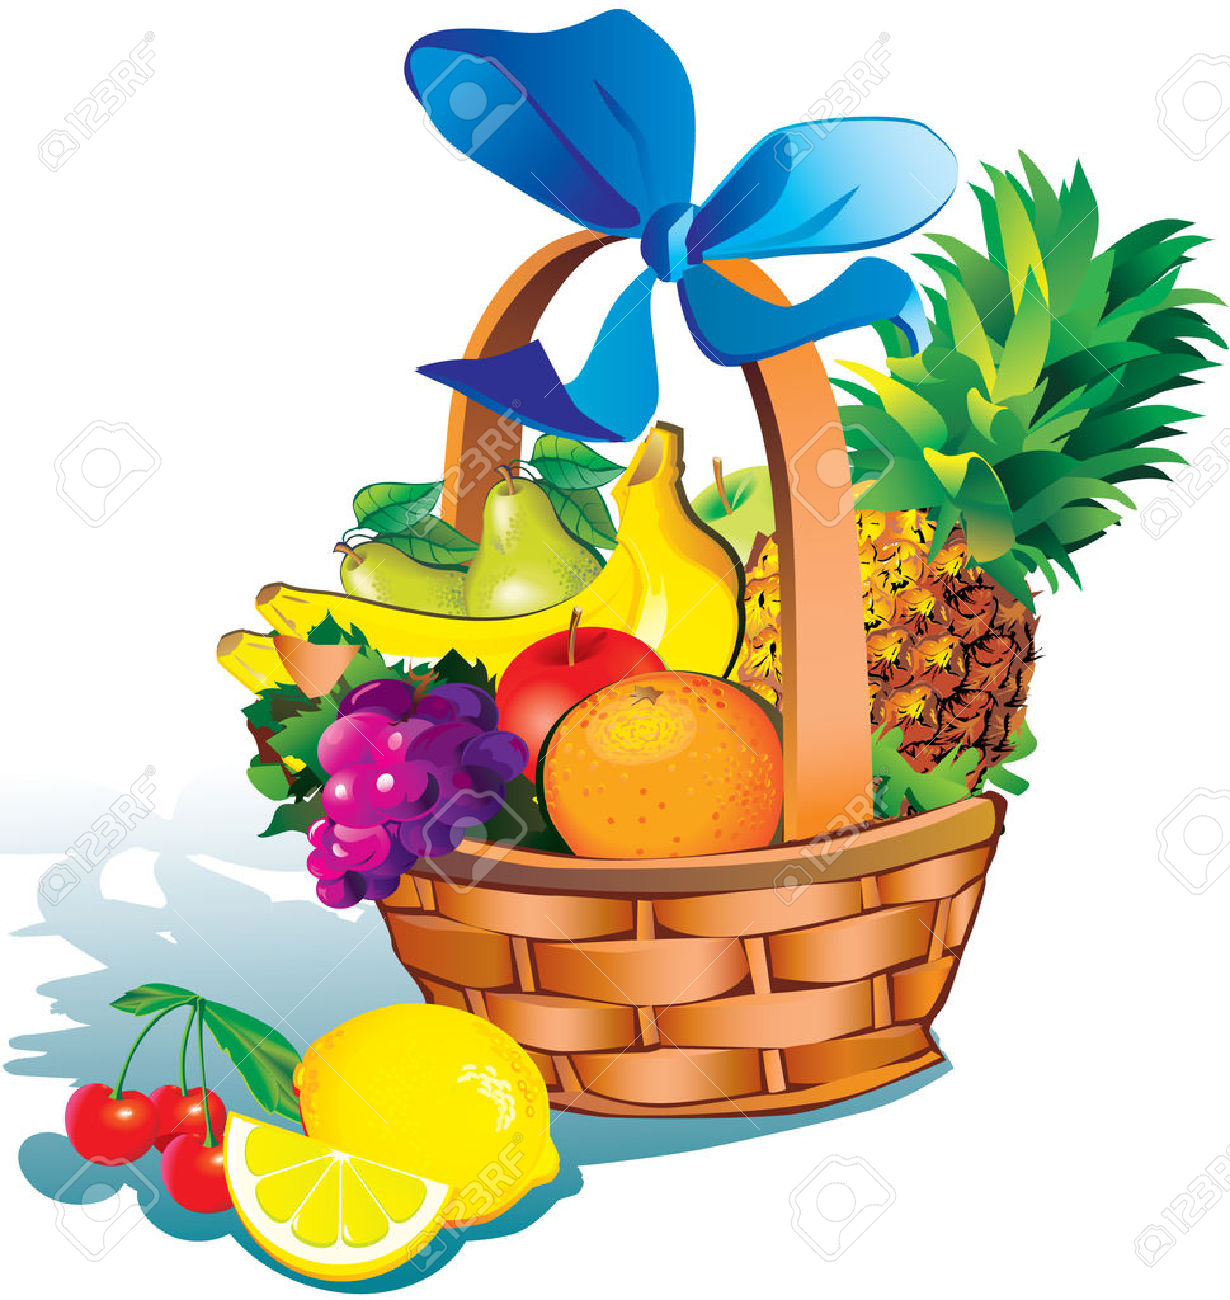 Beautiful Fruits With Basket Over White Background. Salubrious.